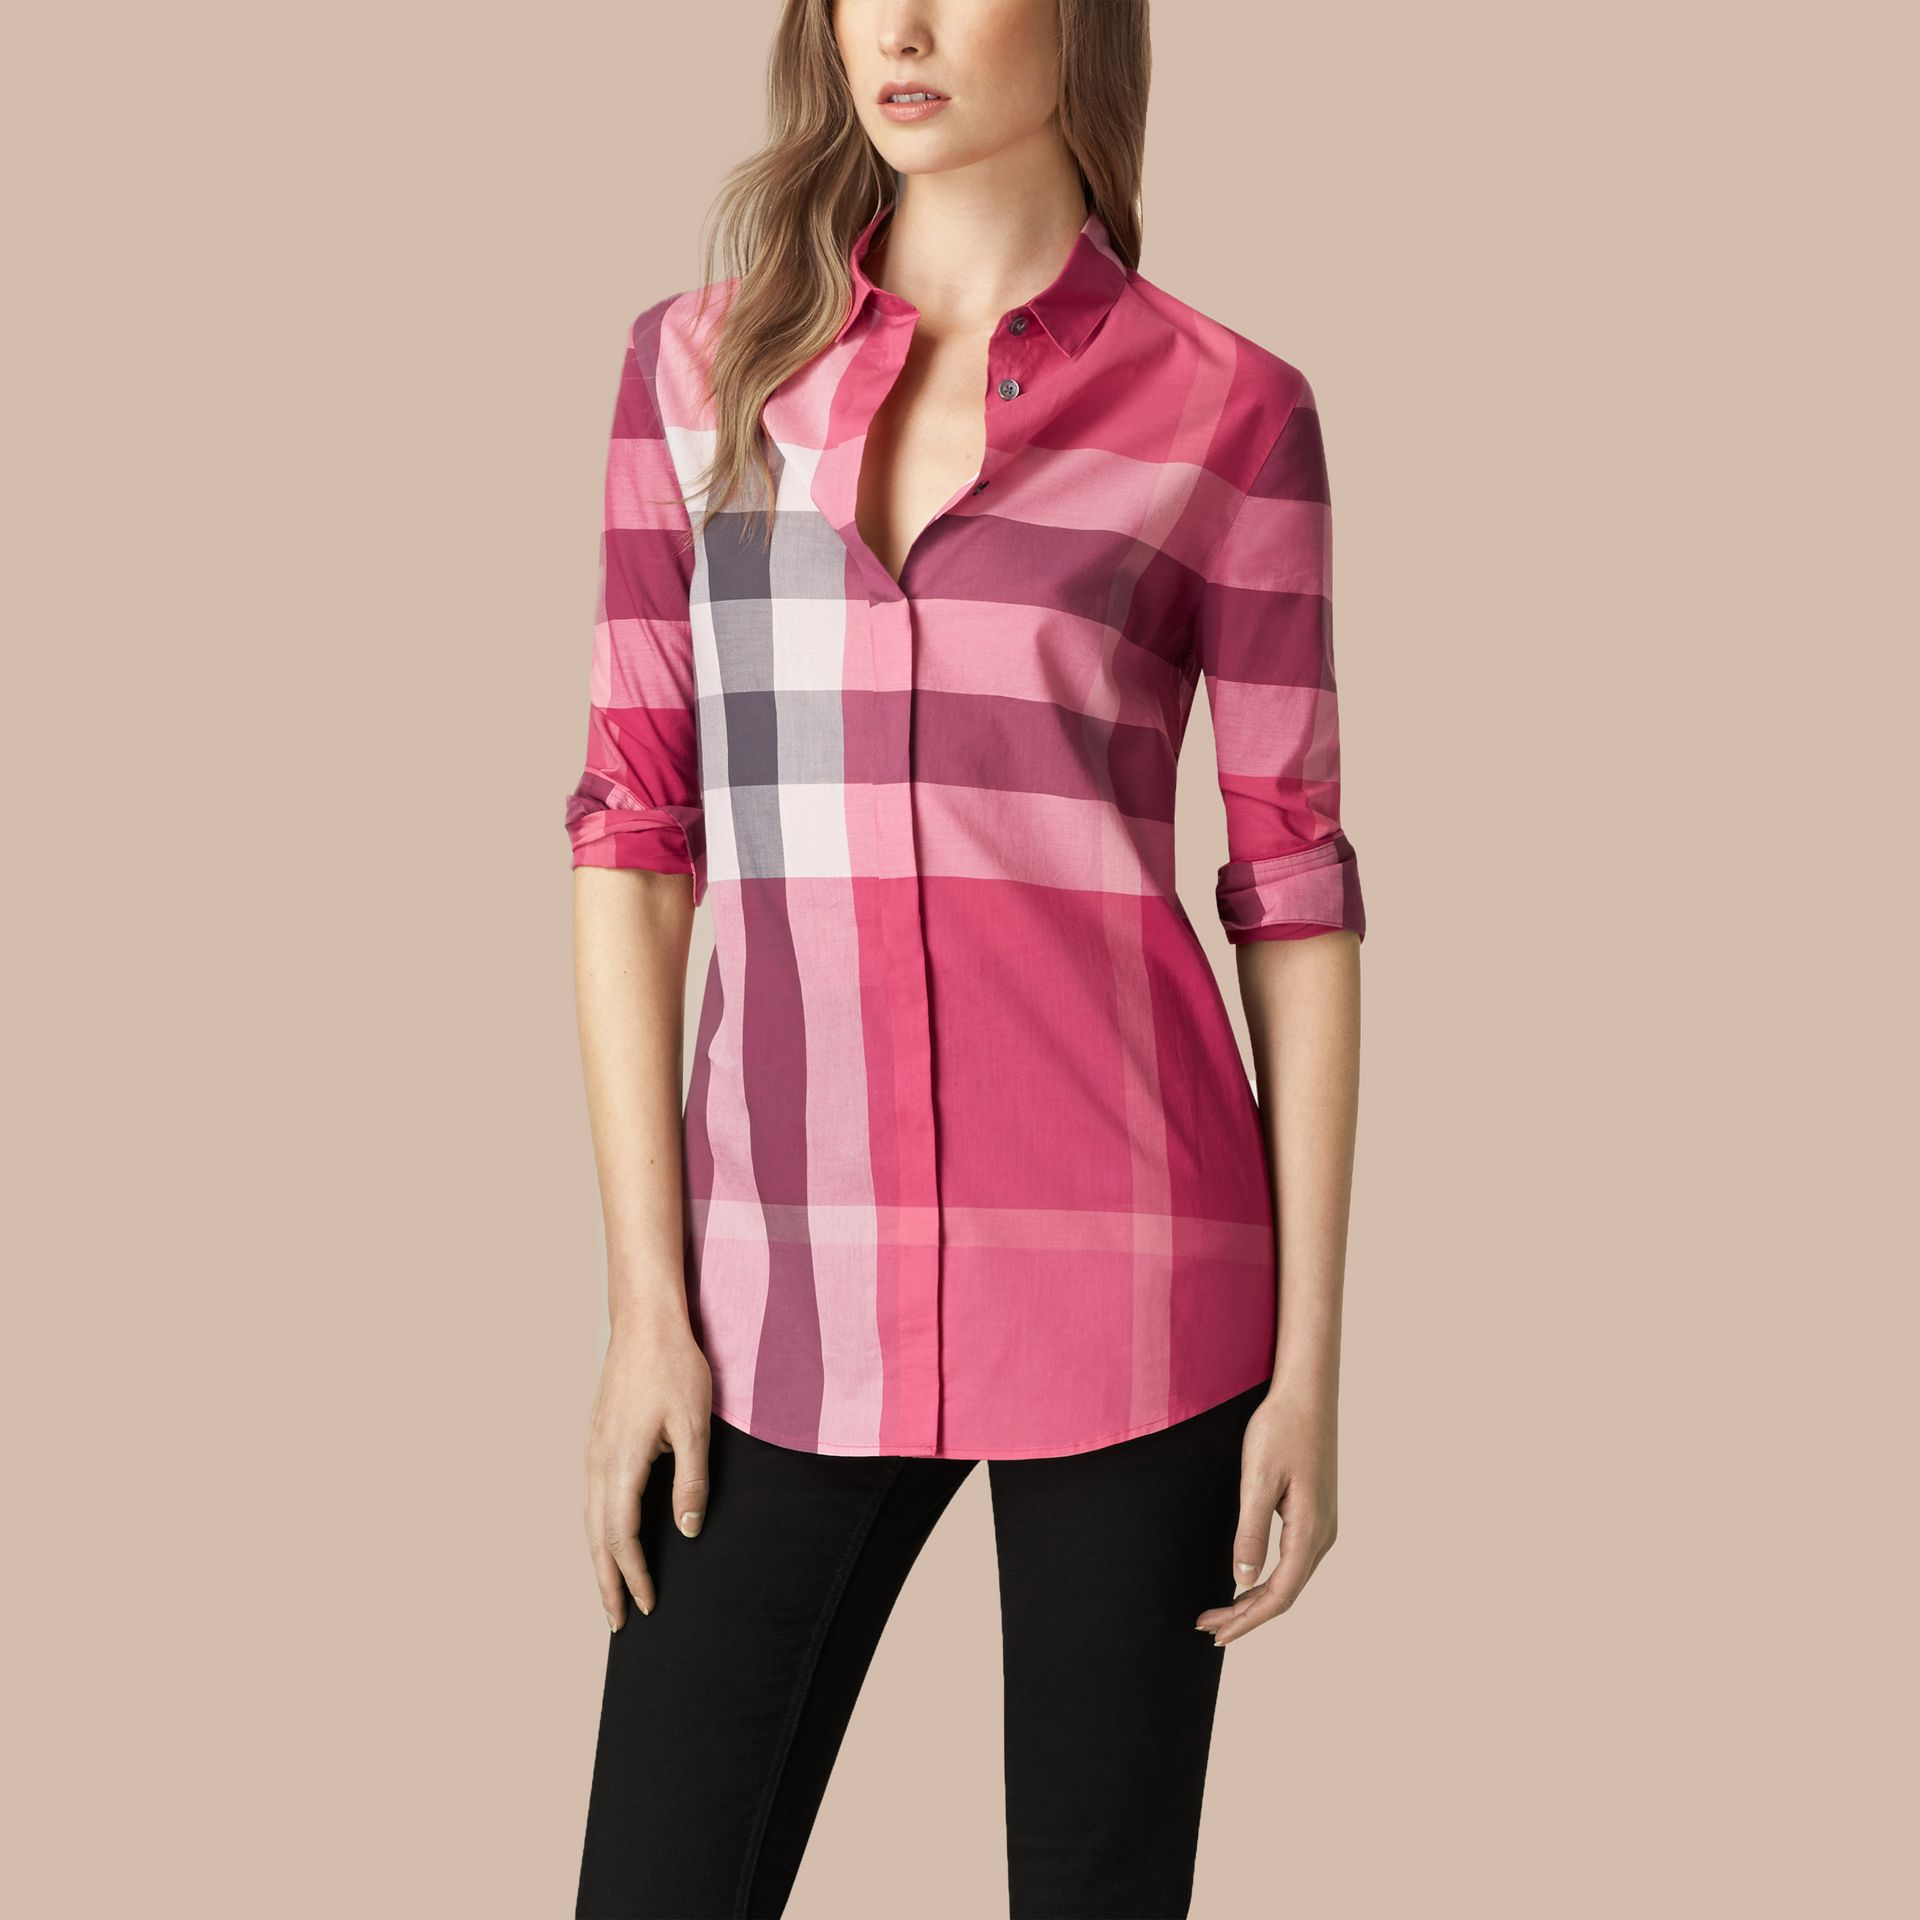 Crimson pink Check Cotton Shirt Crimson Pink - gallery image 1